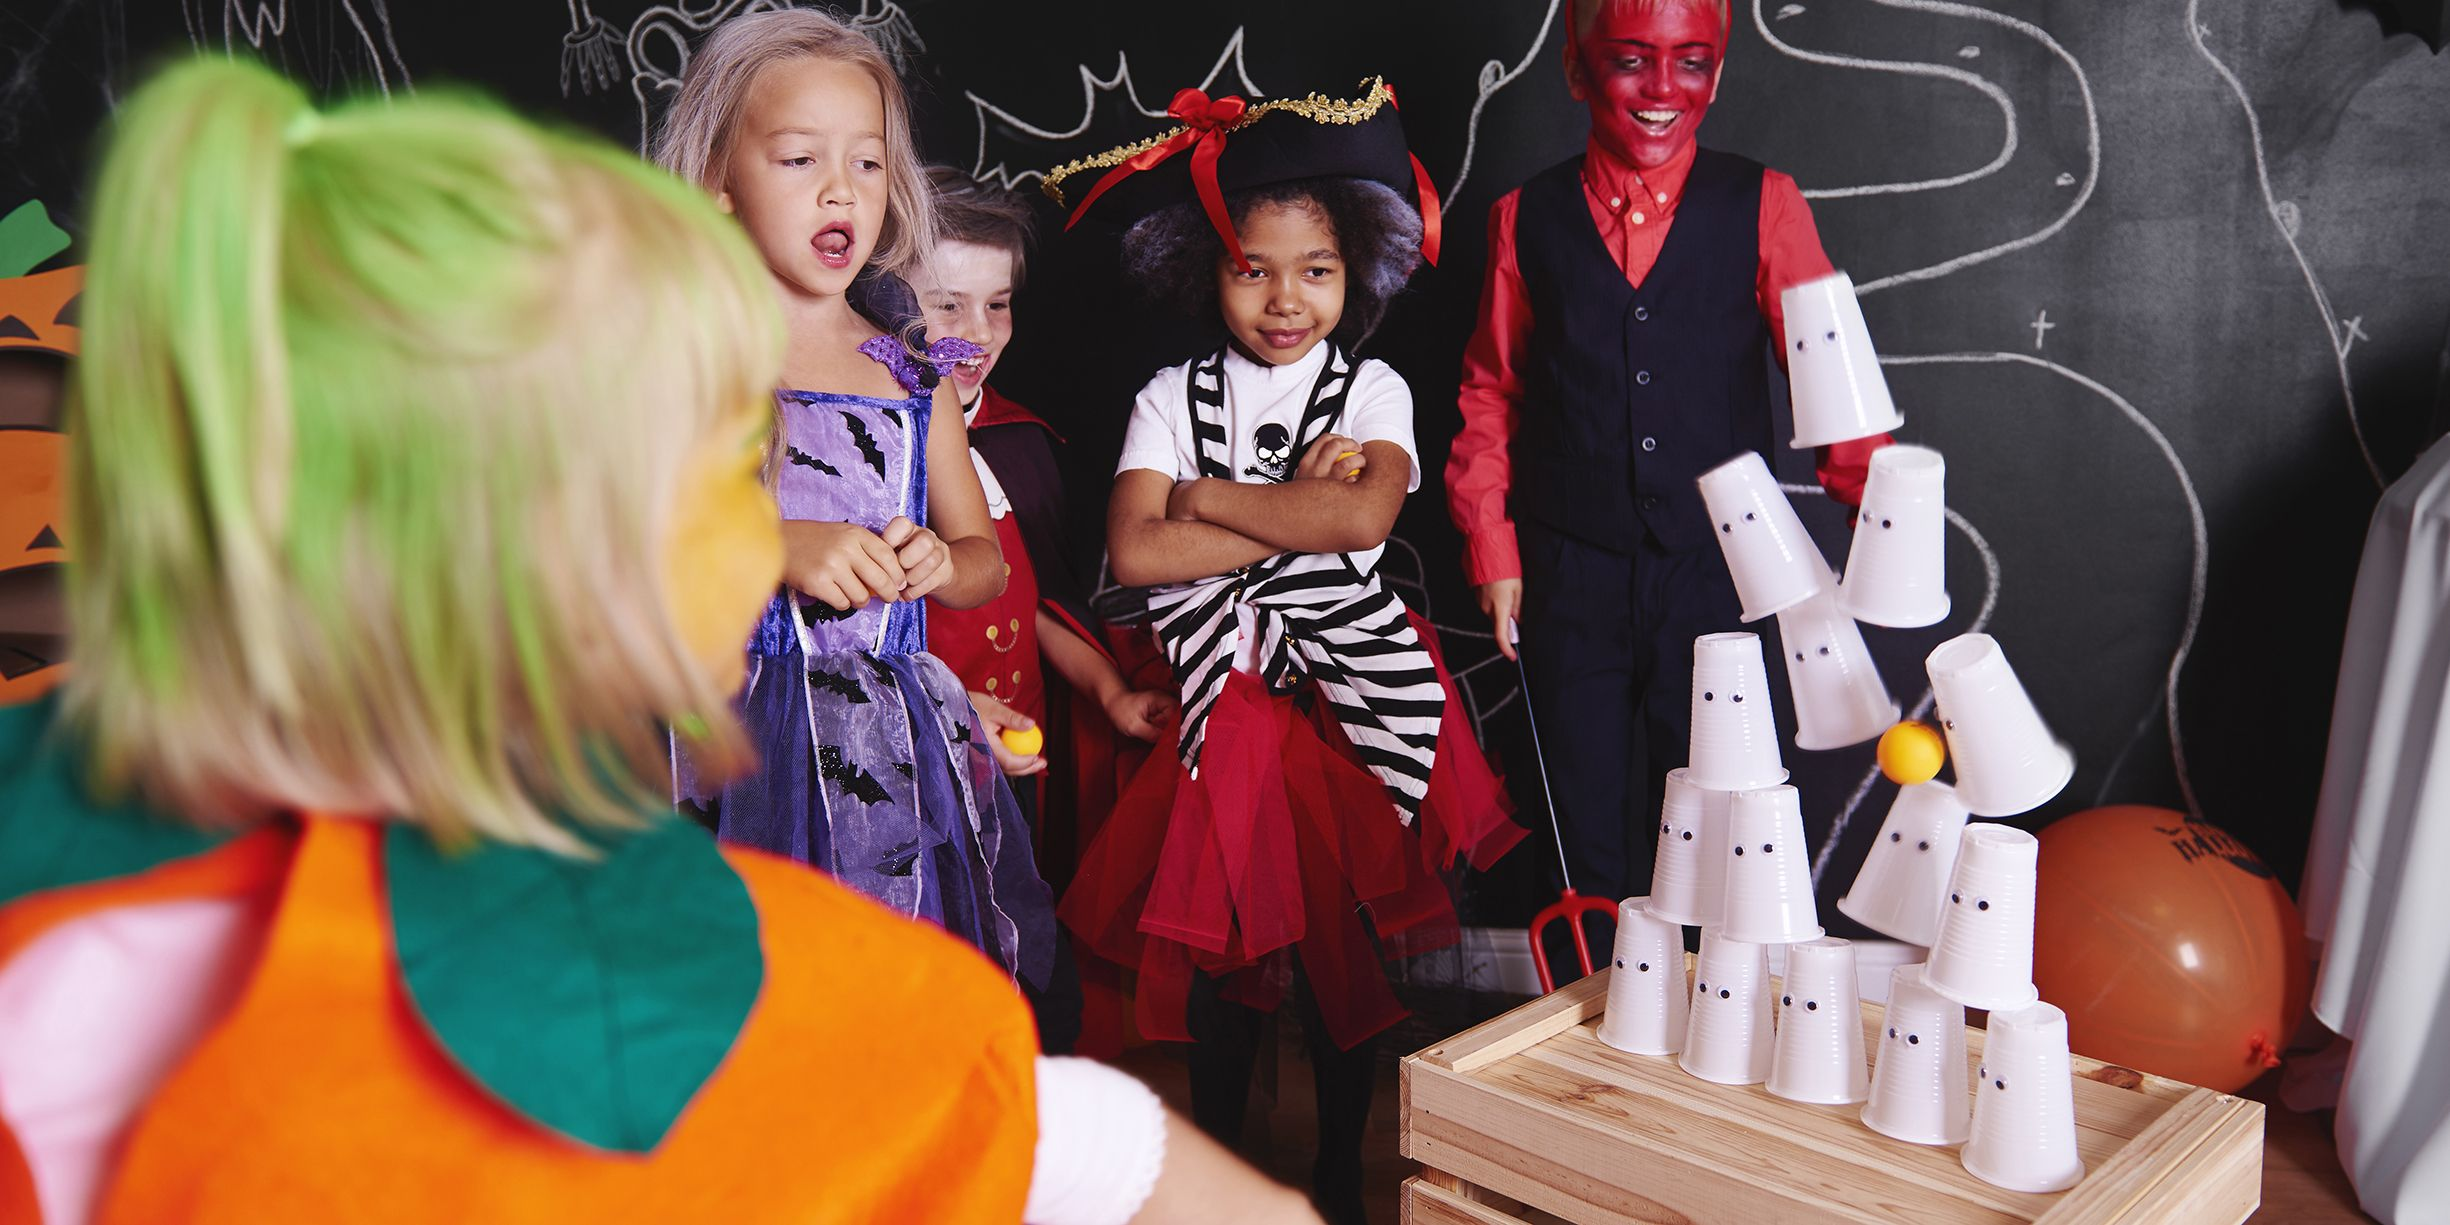 25 fun halloween party games for kids - diy game ideas for halloween